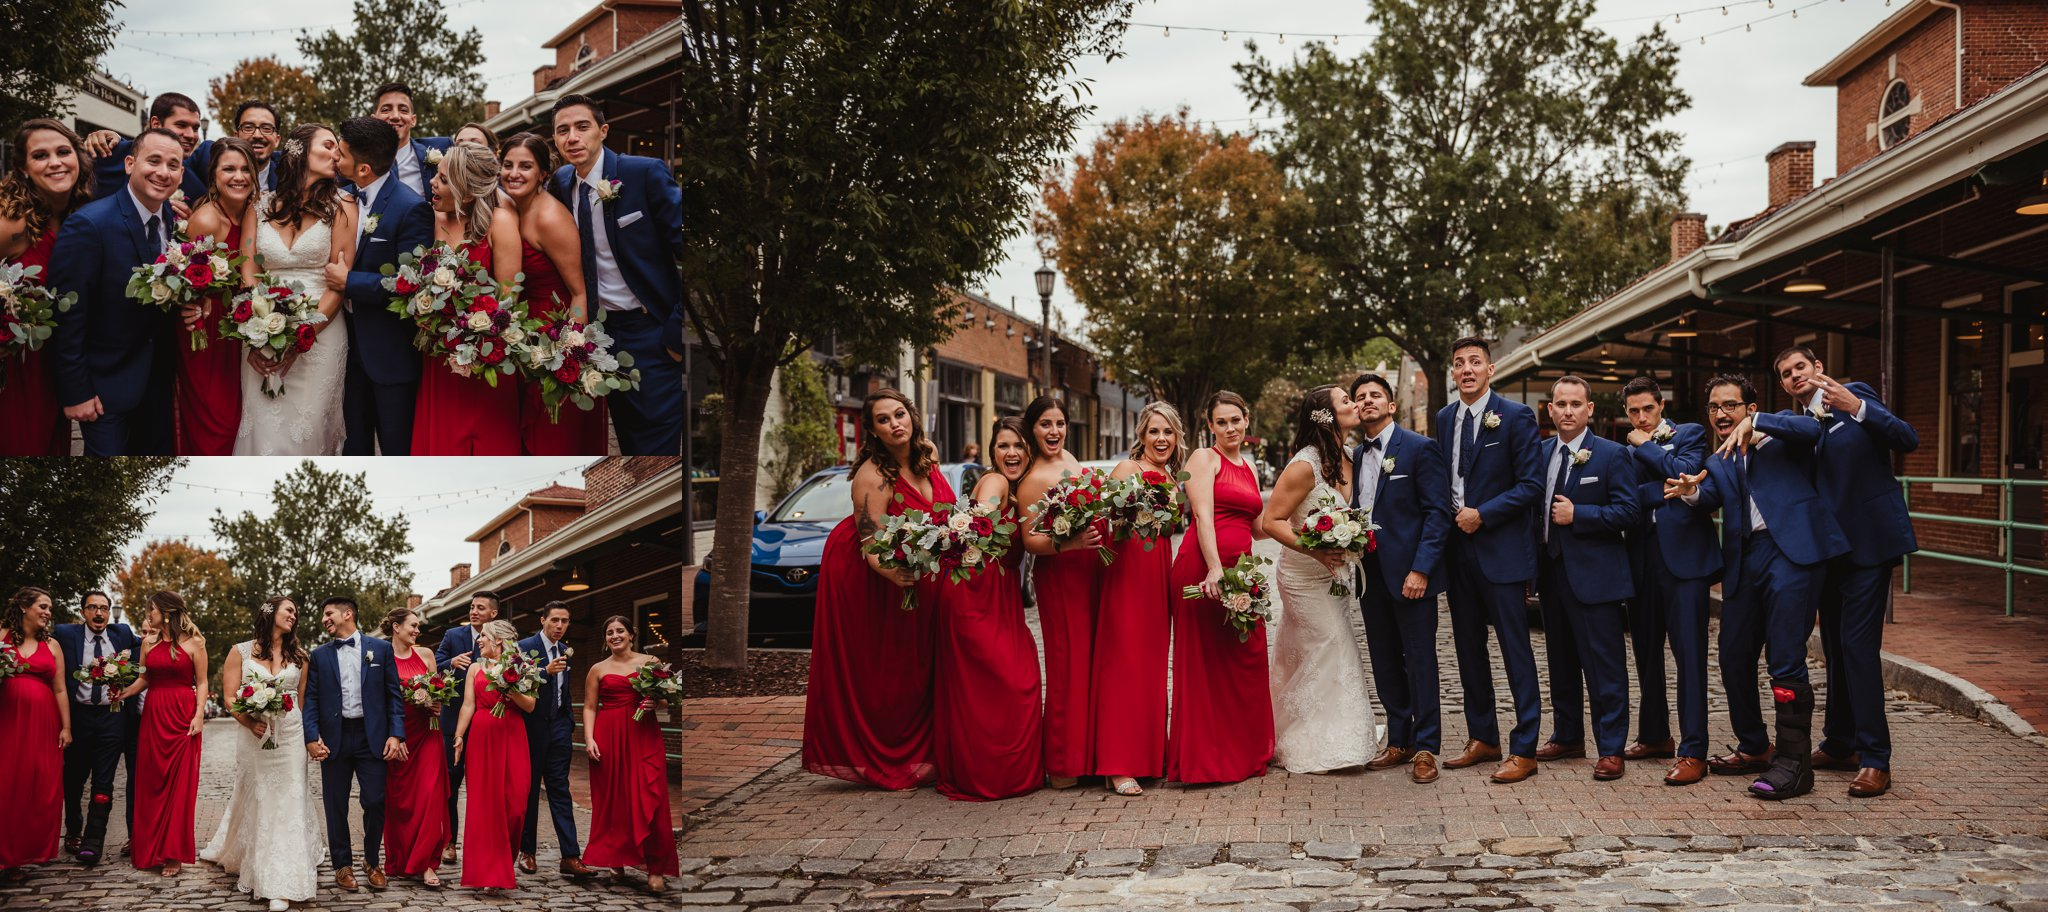 The bridal party took group portraits outside at Market Hall after wedding ceremony in downtown Raleigh, photos by Rose Trail Images.